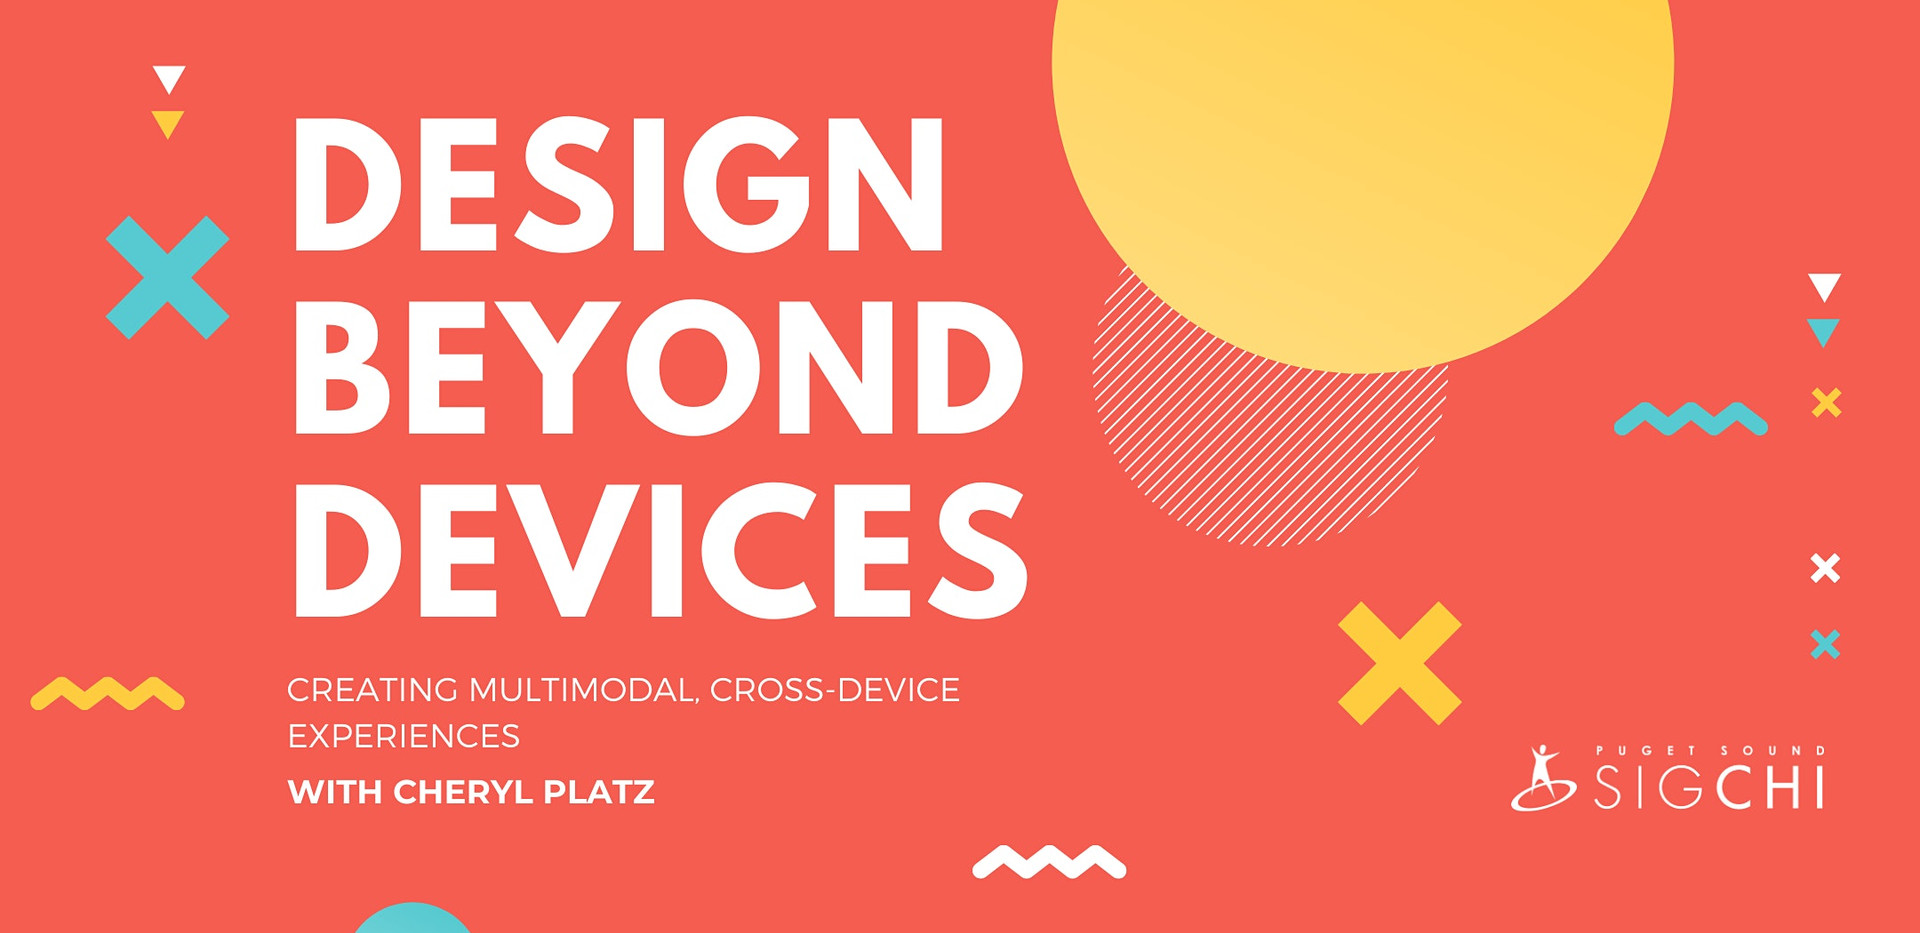 Design Beyond Devices